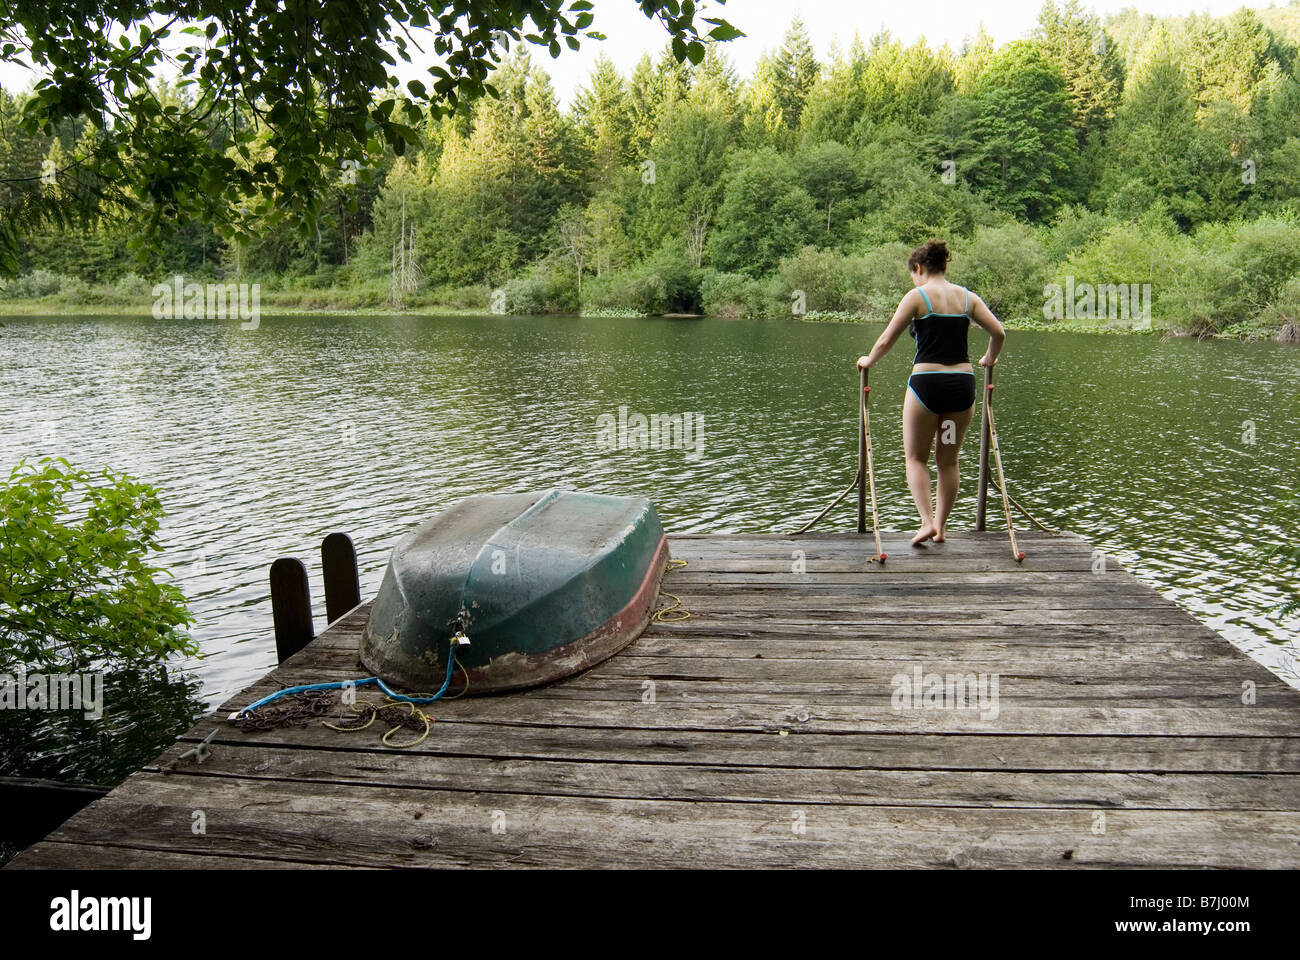 Woman (20-25) walking across a dock with a rowboat on it in a swimsuit, Victoria, Vancouver Island, B.C. Stock Photo